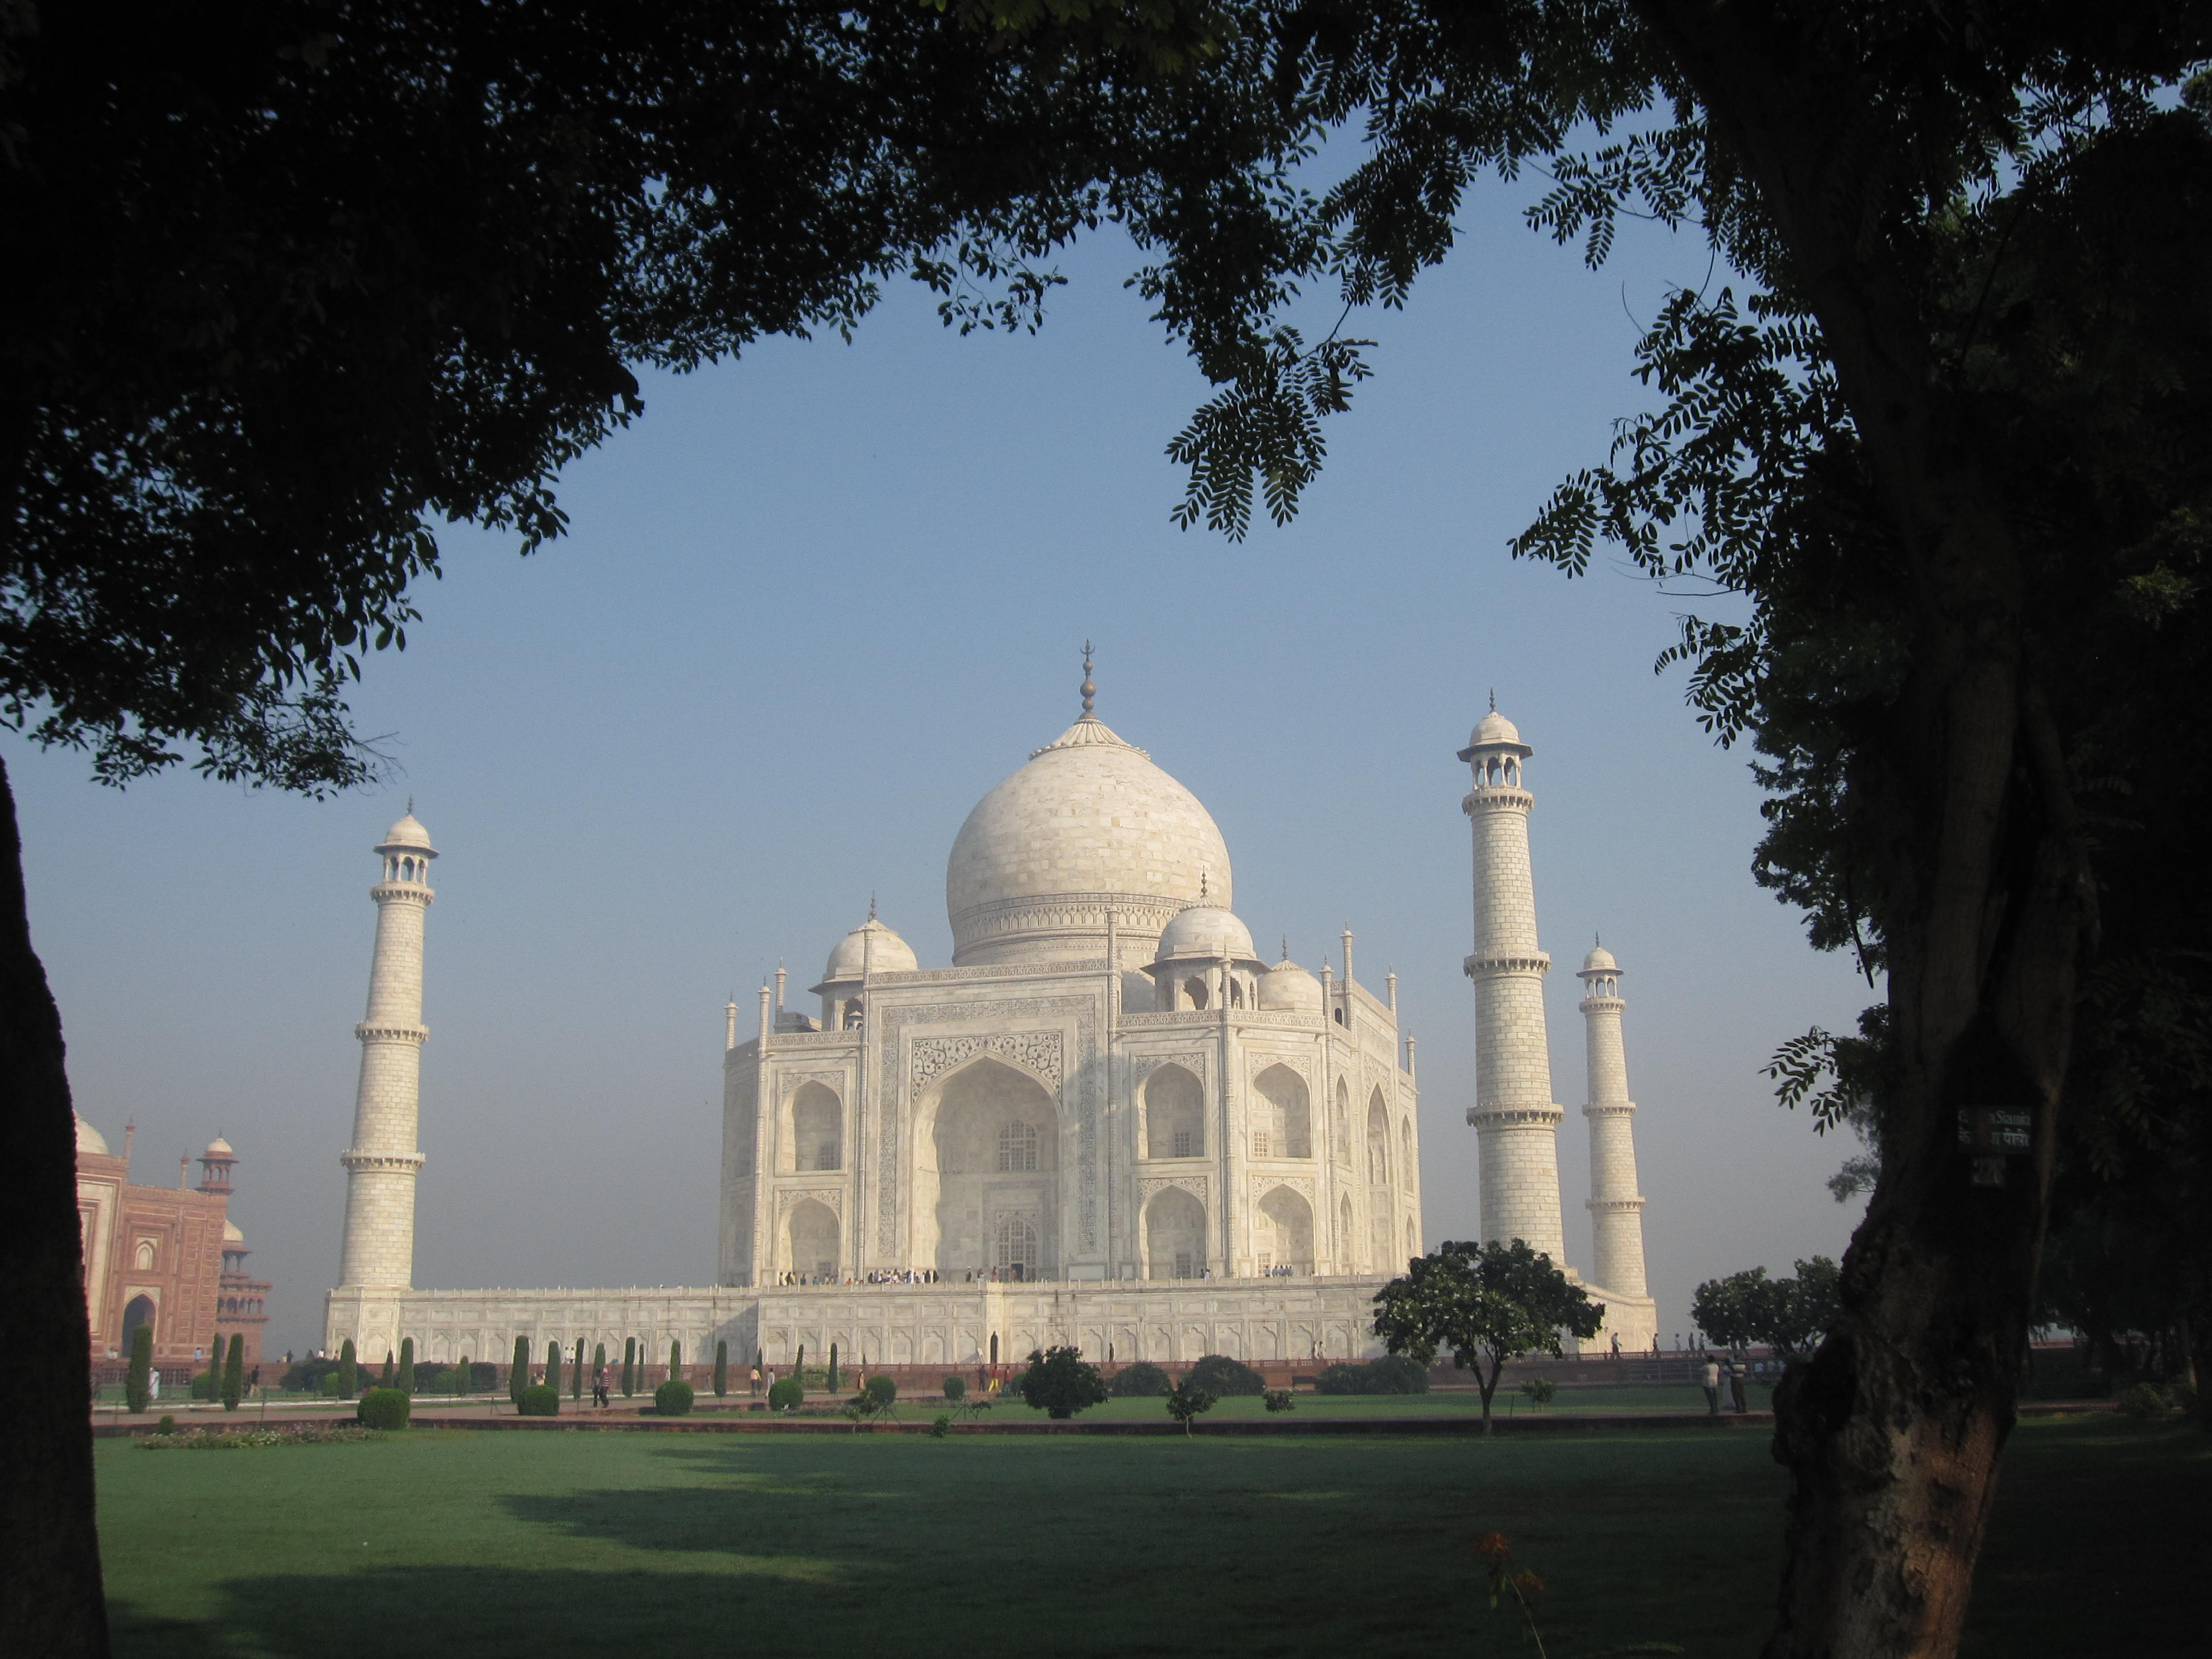 asia fly brother page  awe induced by early morning sunlight striking a structure as magnificently designed as the taj a confection of marble as intricately woven as lace